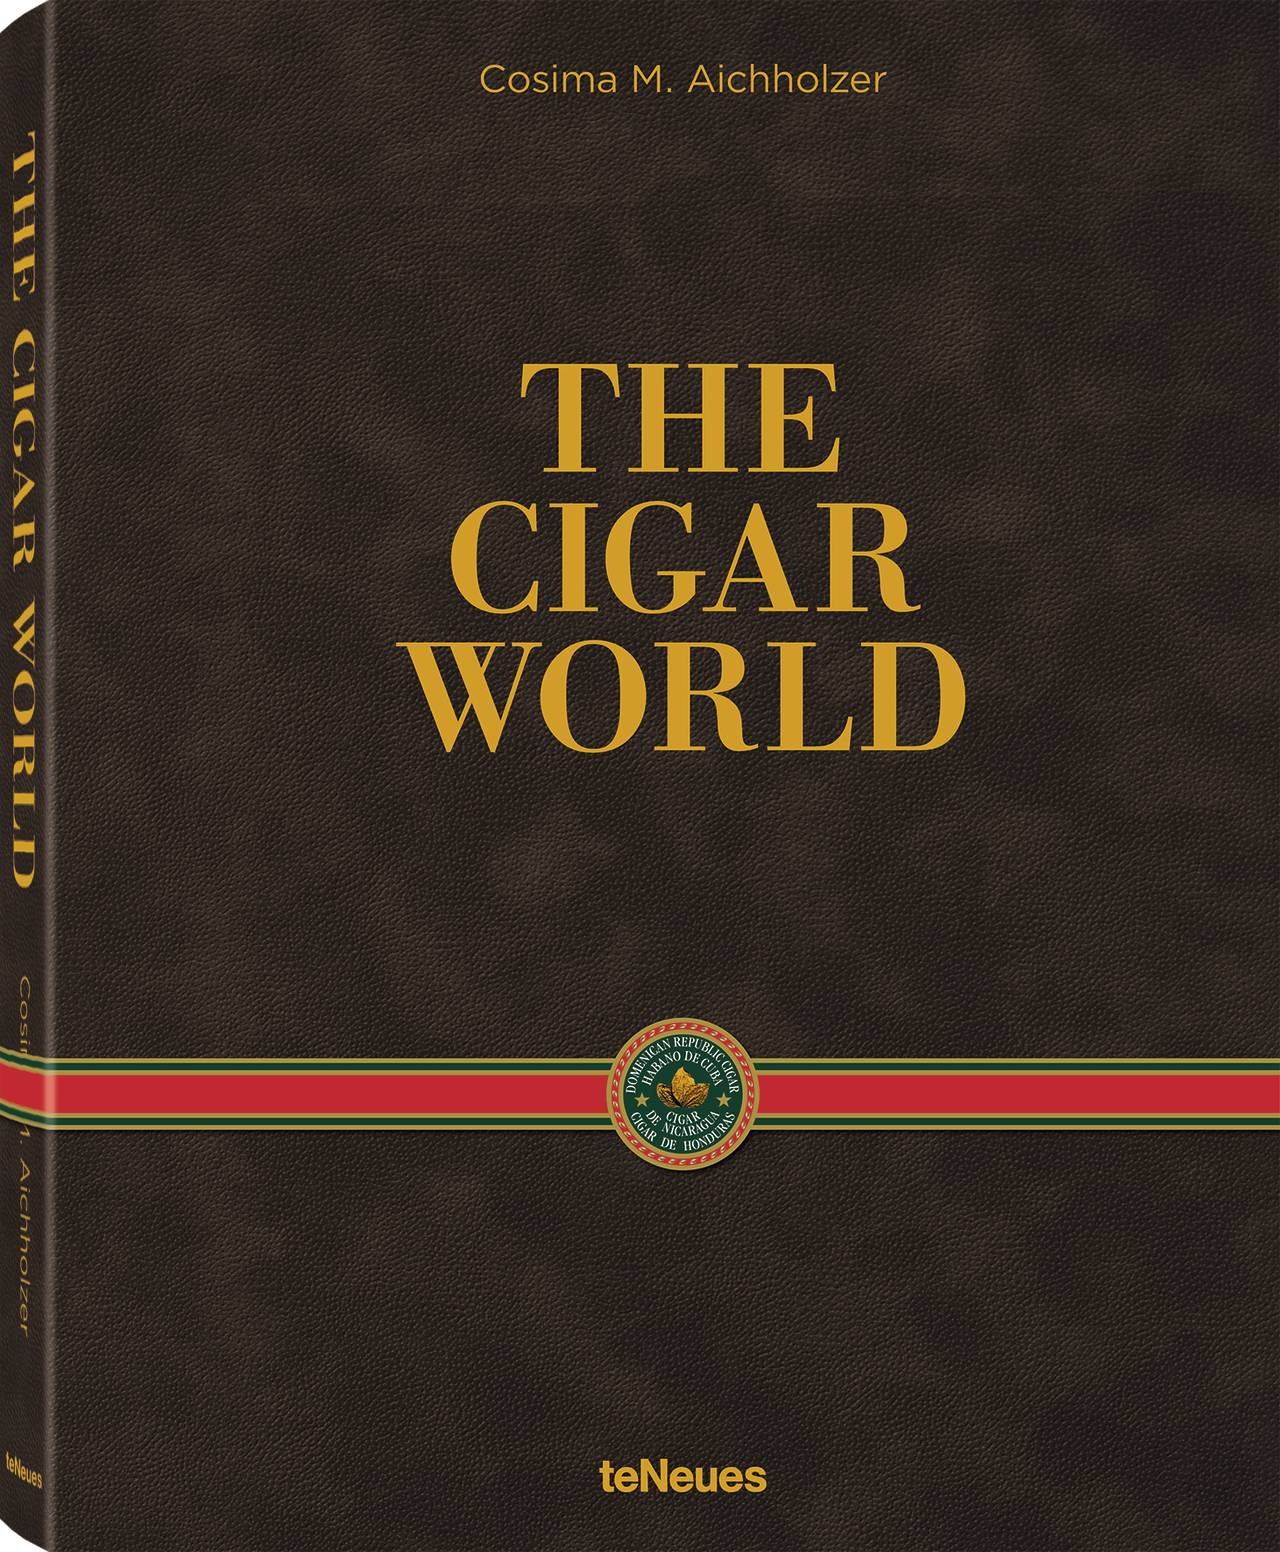 © THE CIGAR WORLD by Cosima M. Aichholzer, published by teNeues, www.teneues.com.